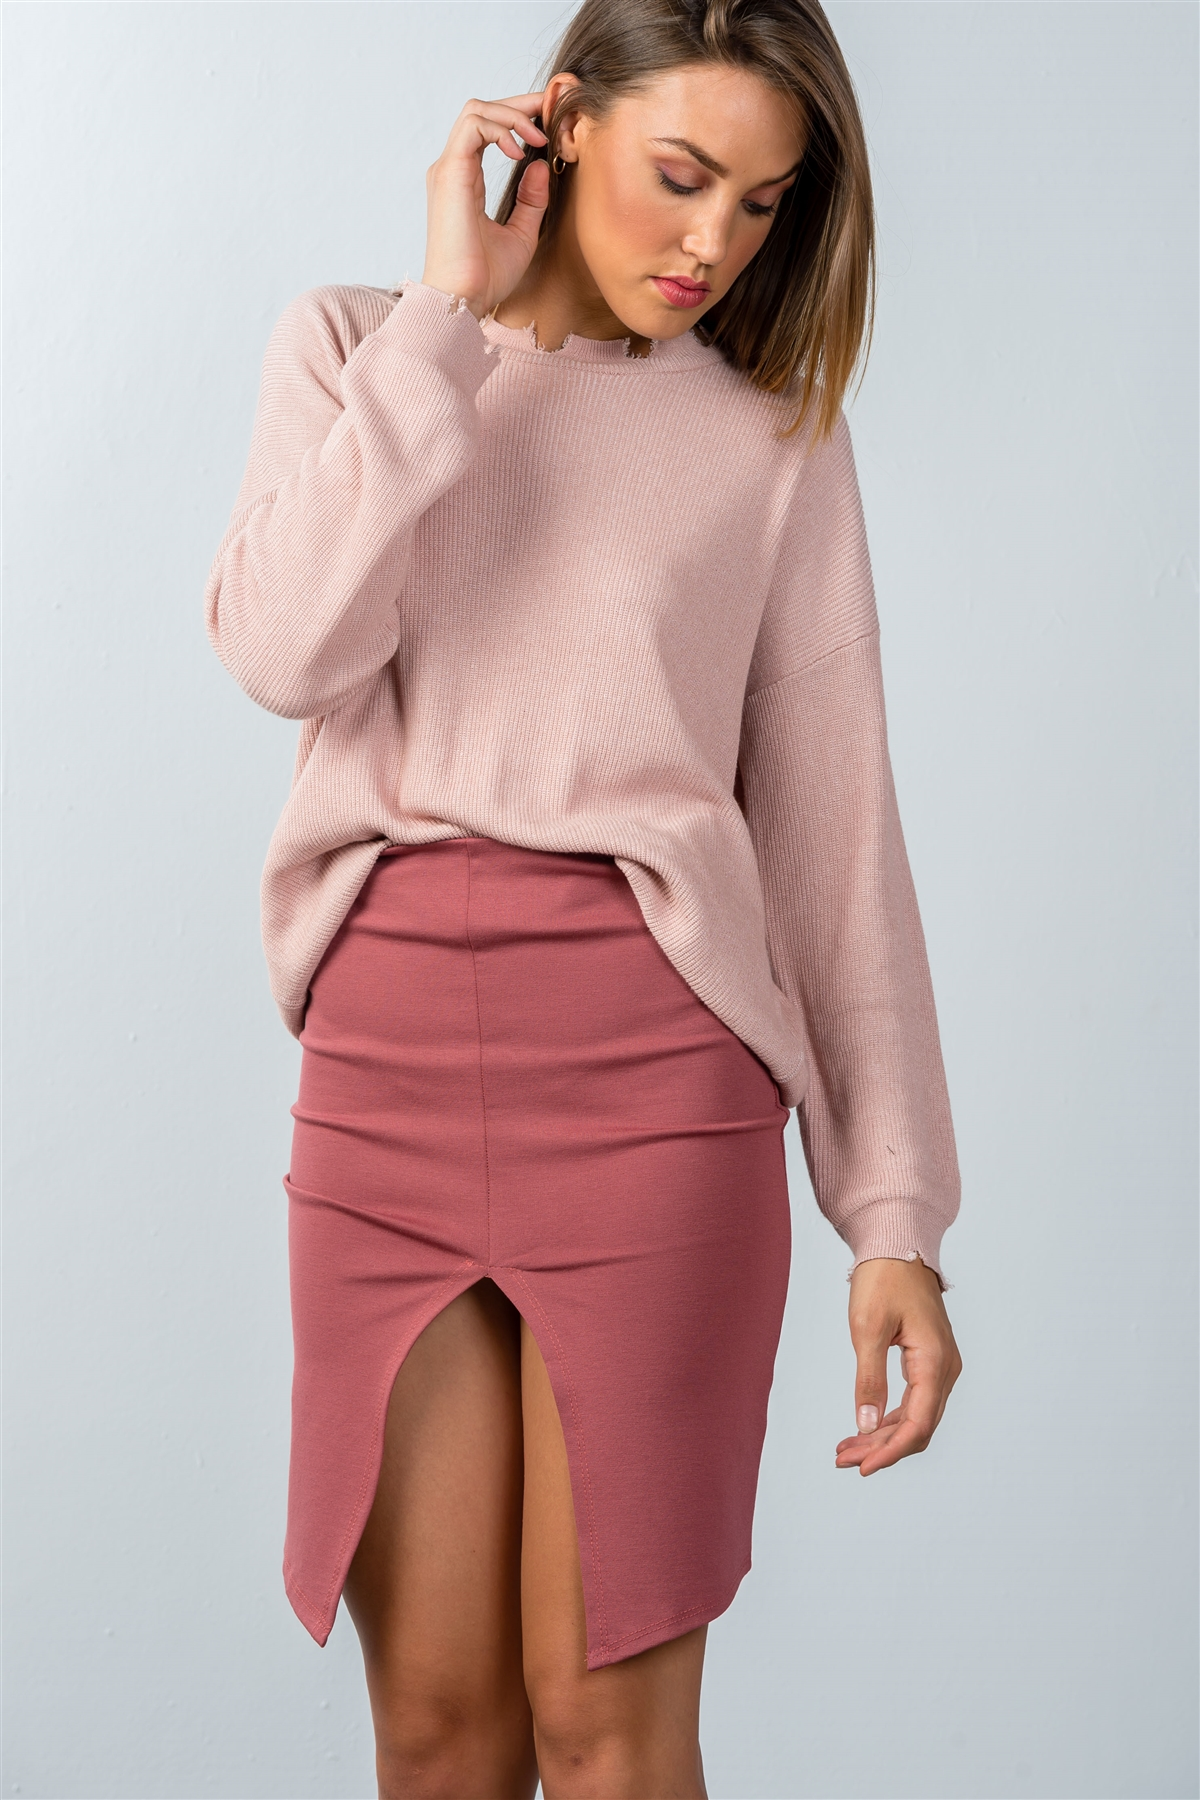 aed9f72e8 Dark Rose Front Slit Mini Skirt /3-2-1